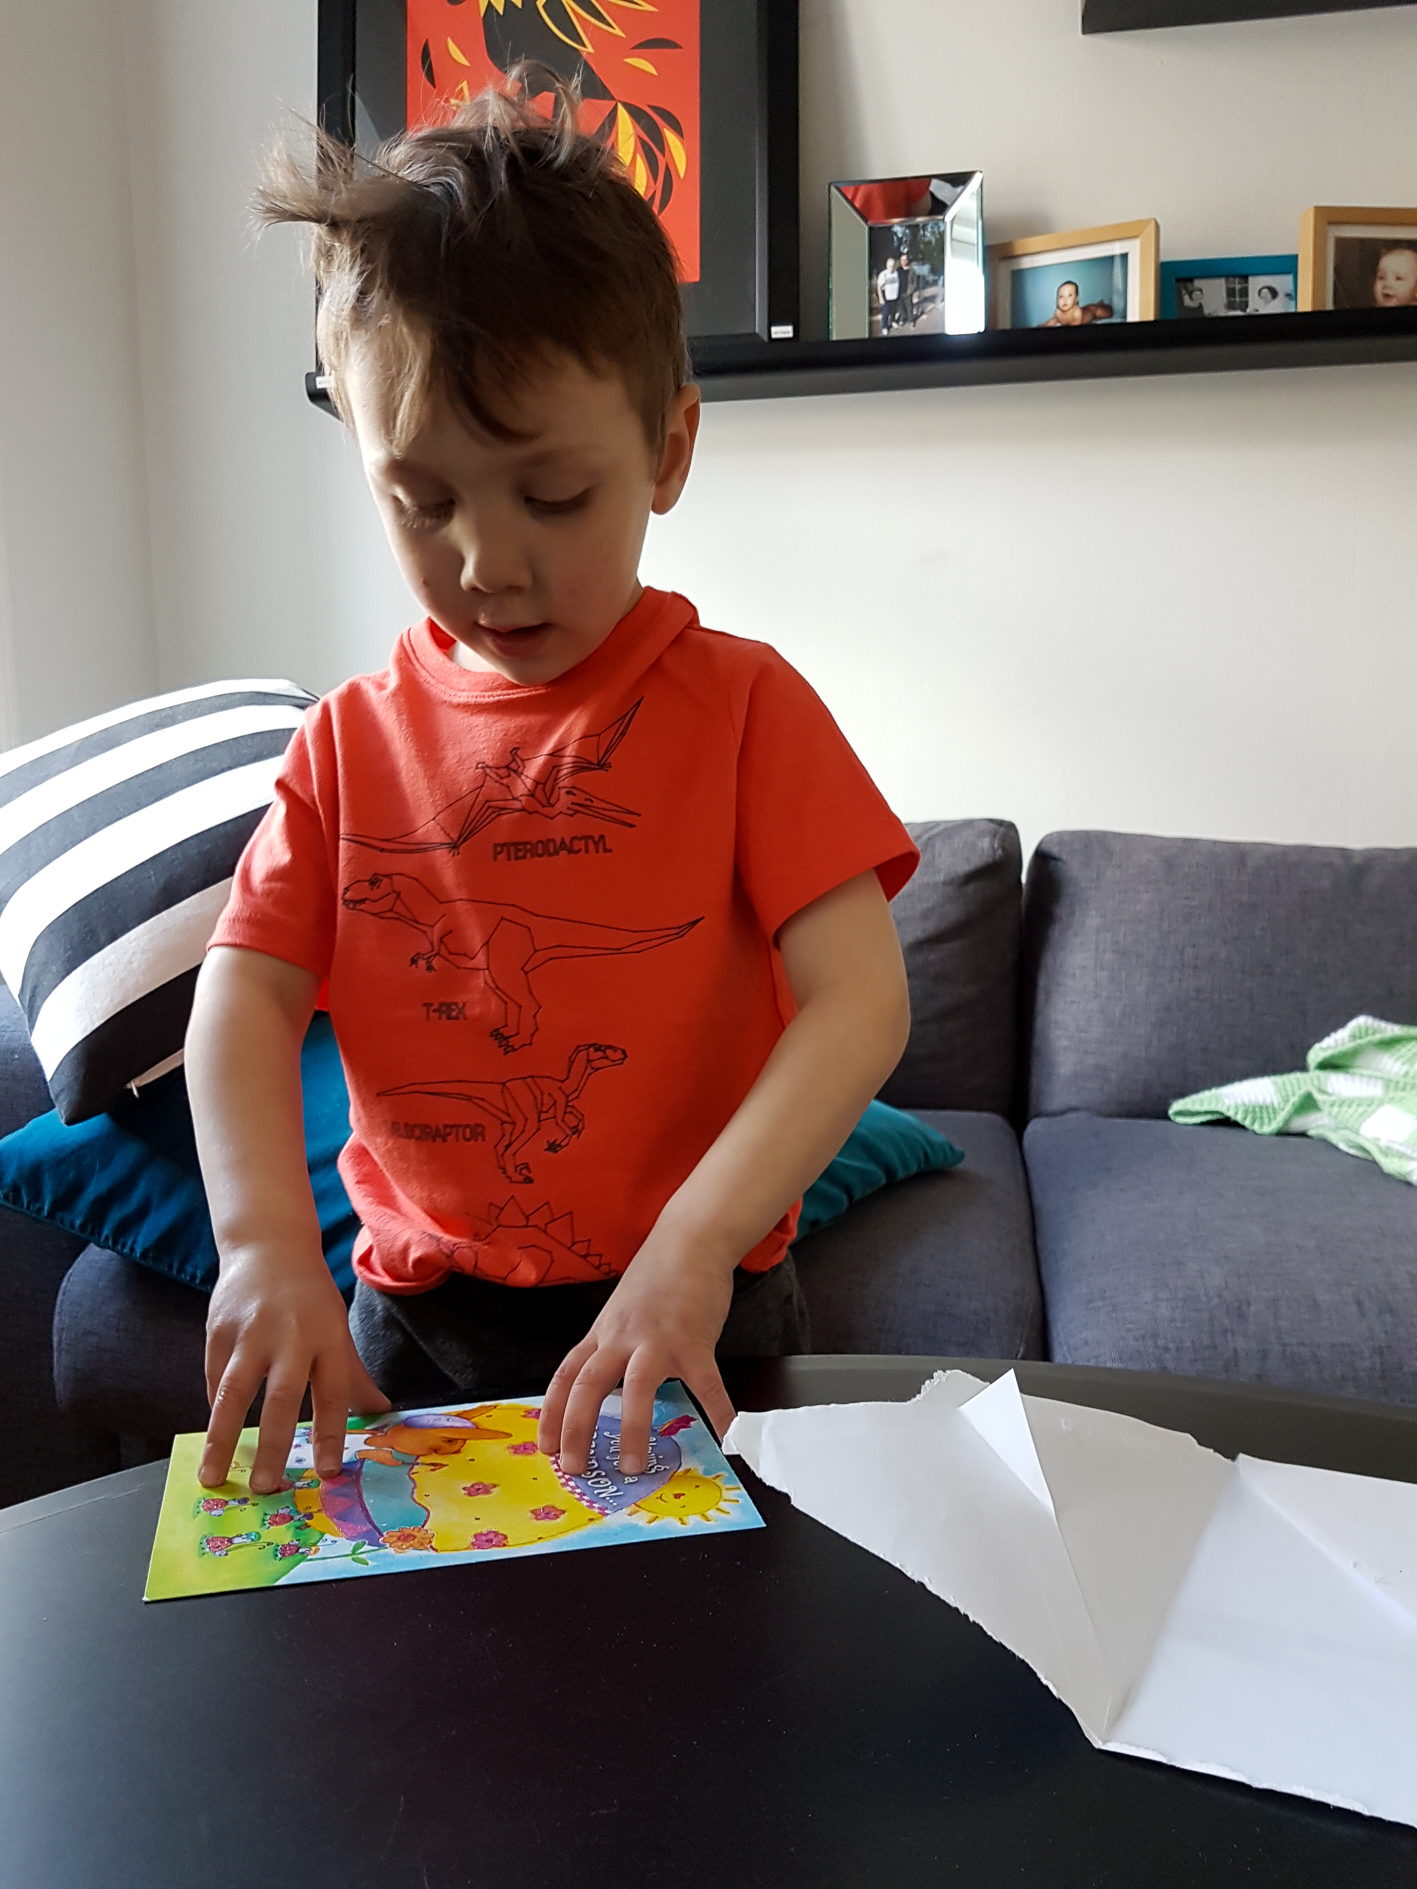 Opening his Easter card from Meema.